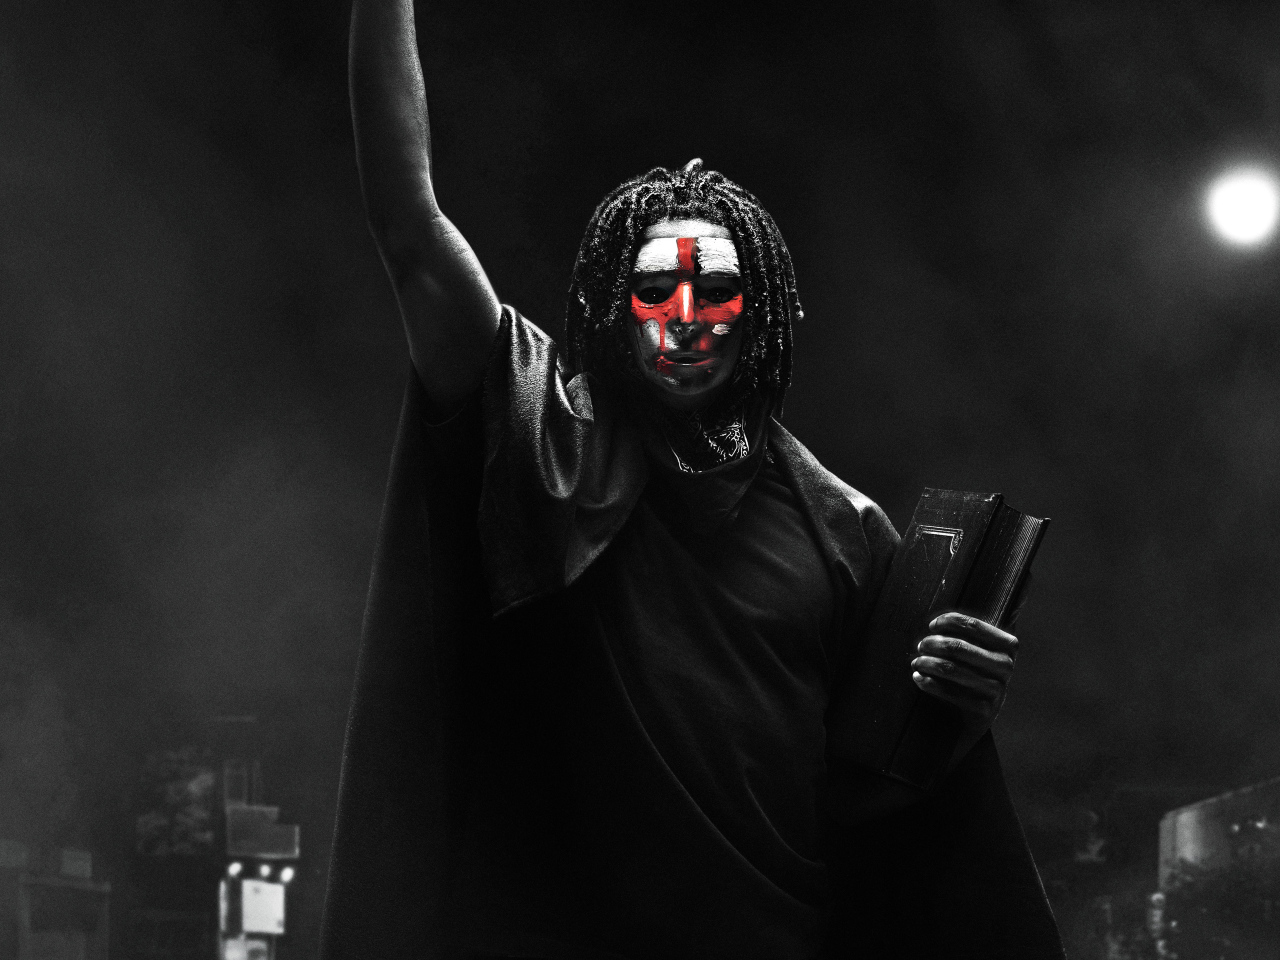 2018 Movie Posters: The First Purge 2018 Movie Poster, HD 4K Wallpaper